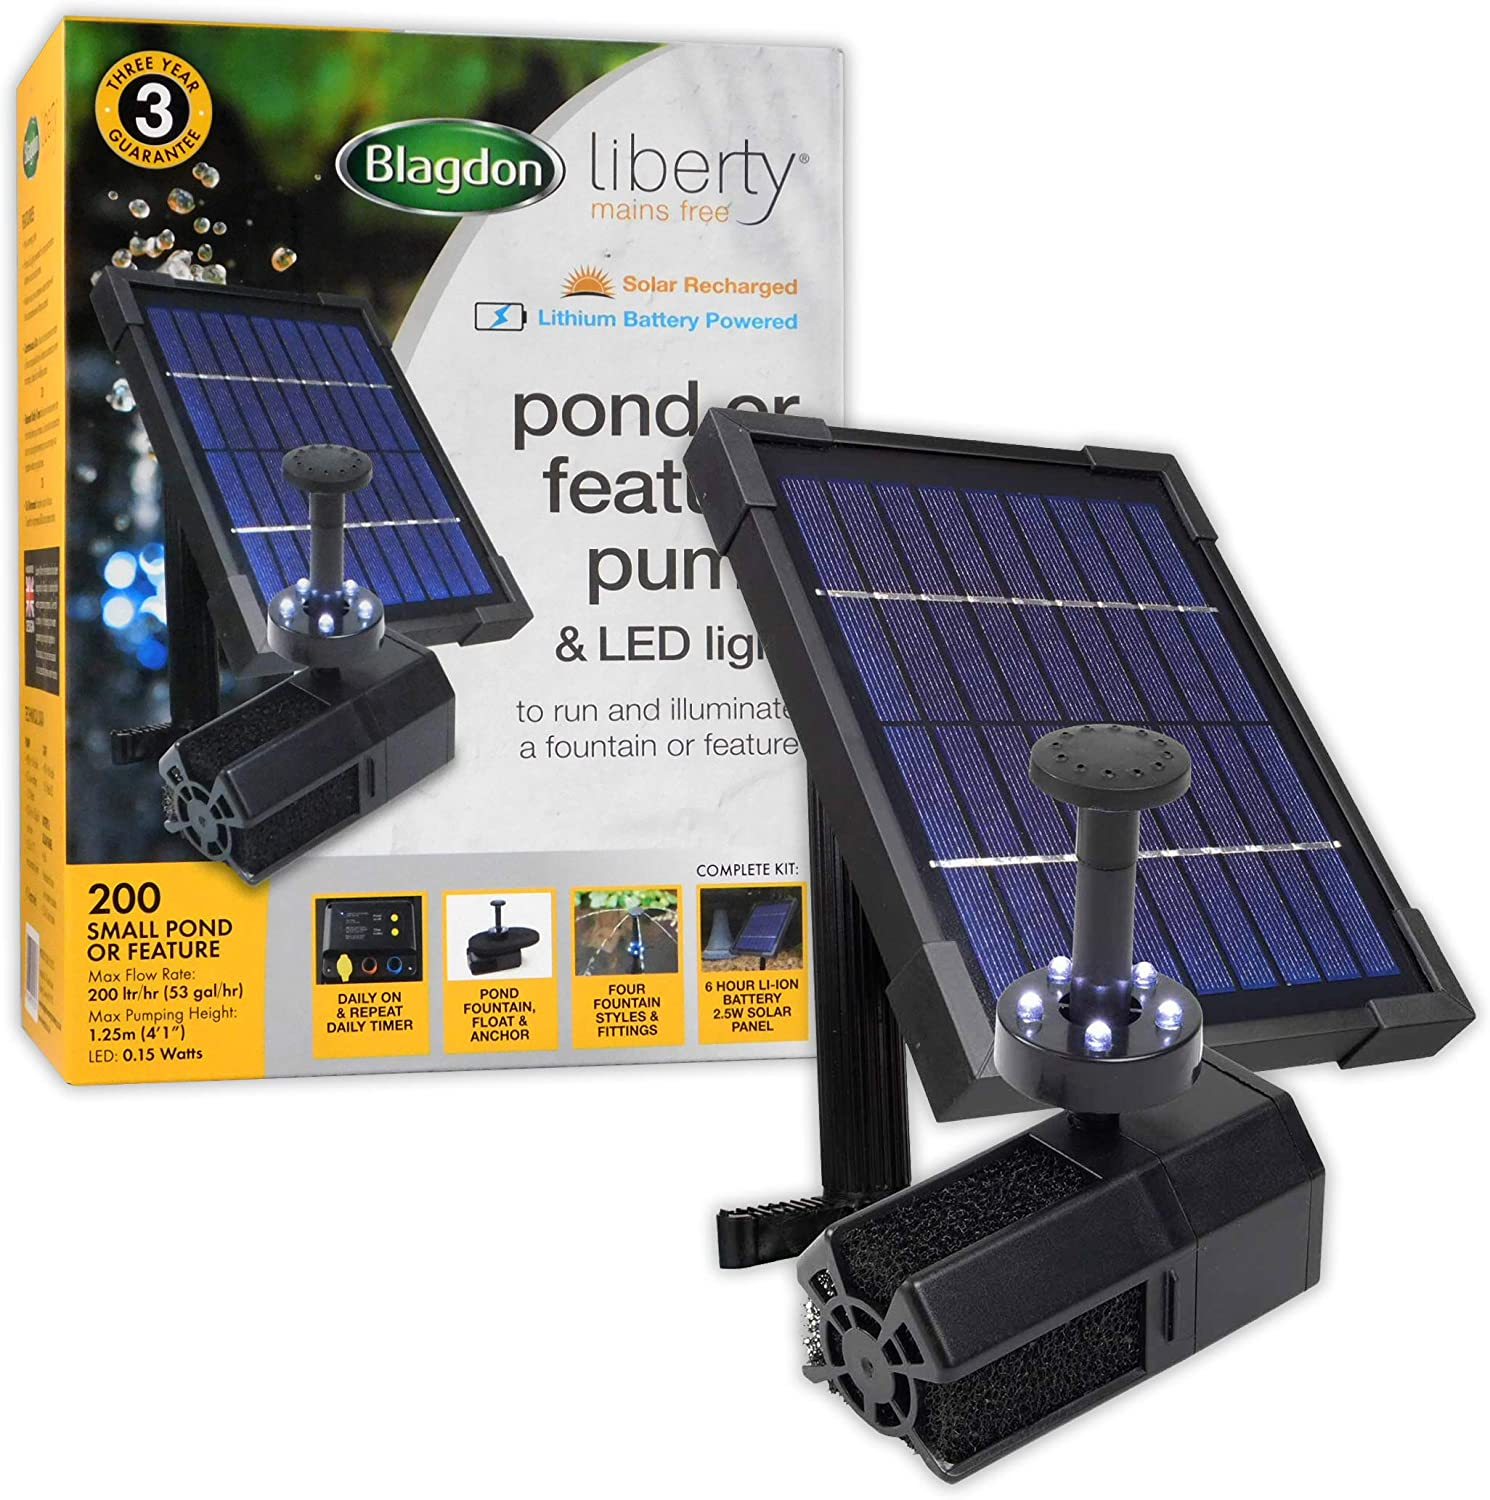 Blagdon Liberty 200 Solar Powered Pond Or Feature Pump And LED Light